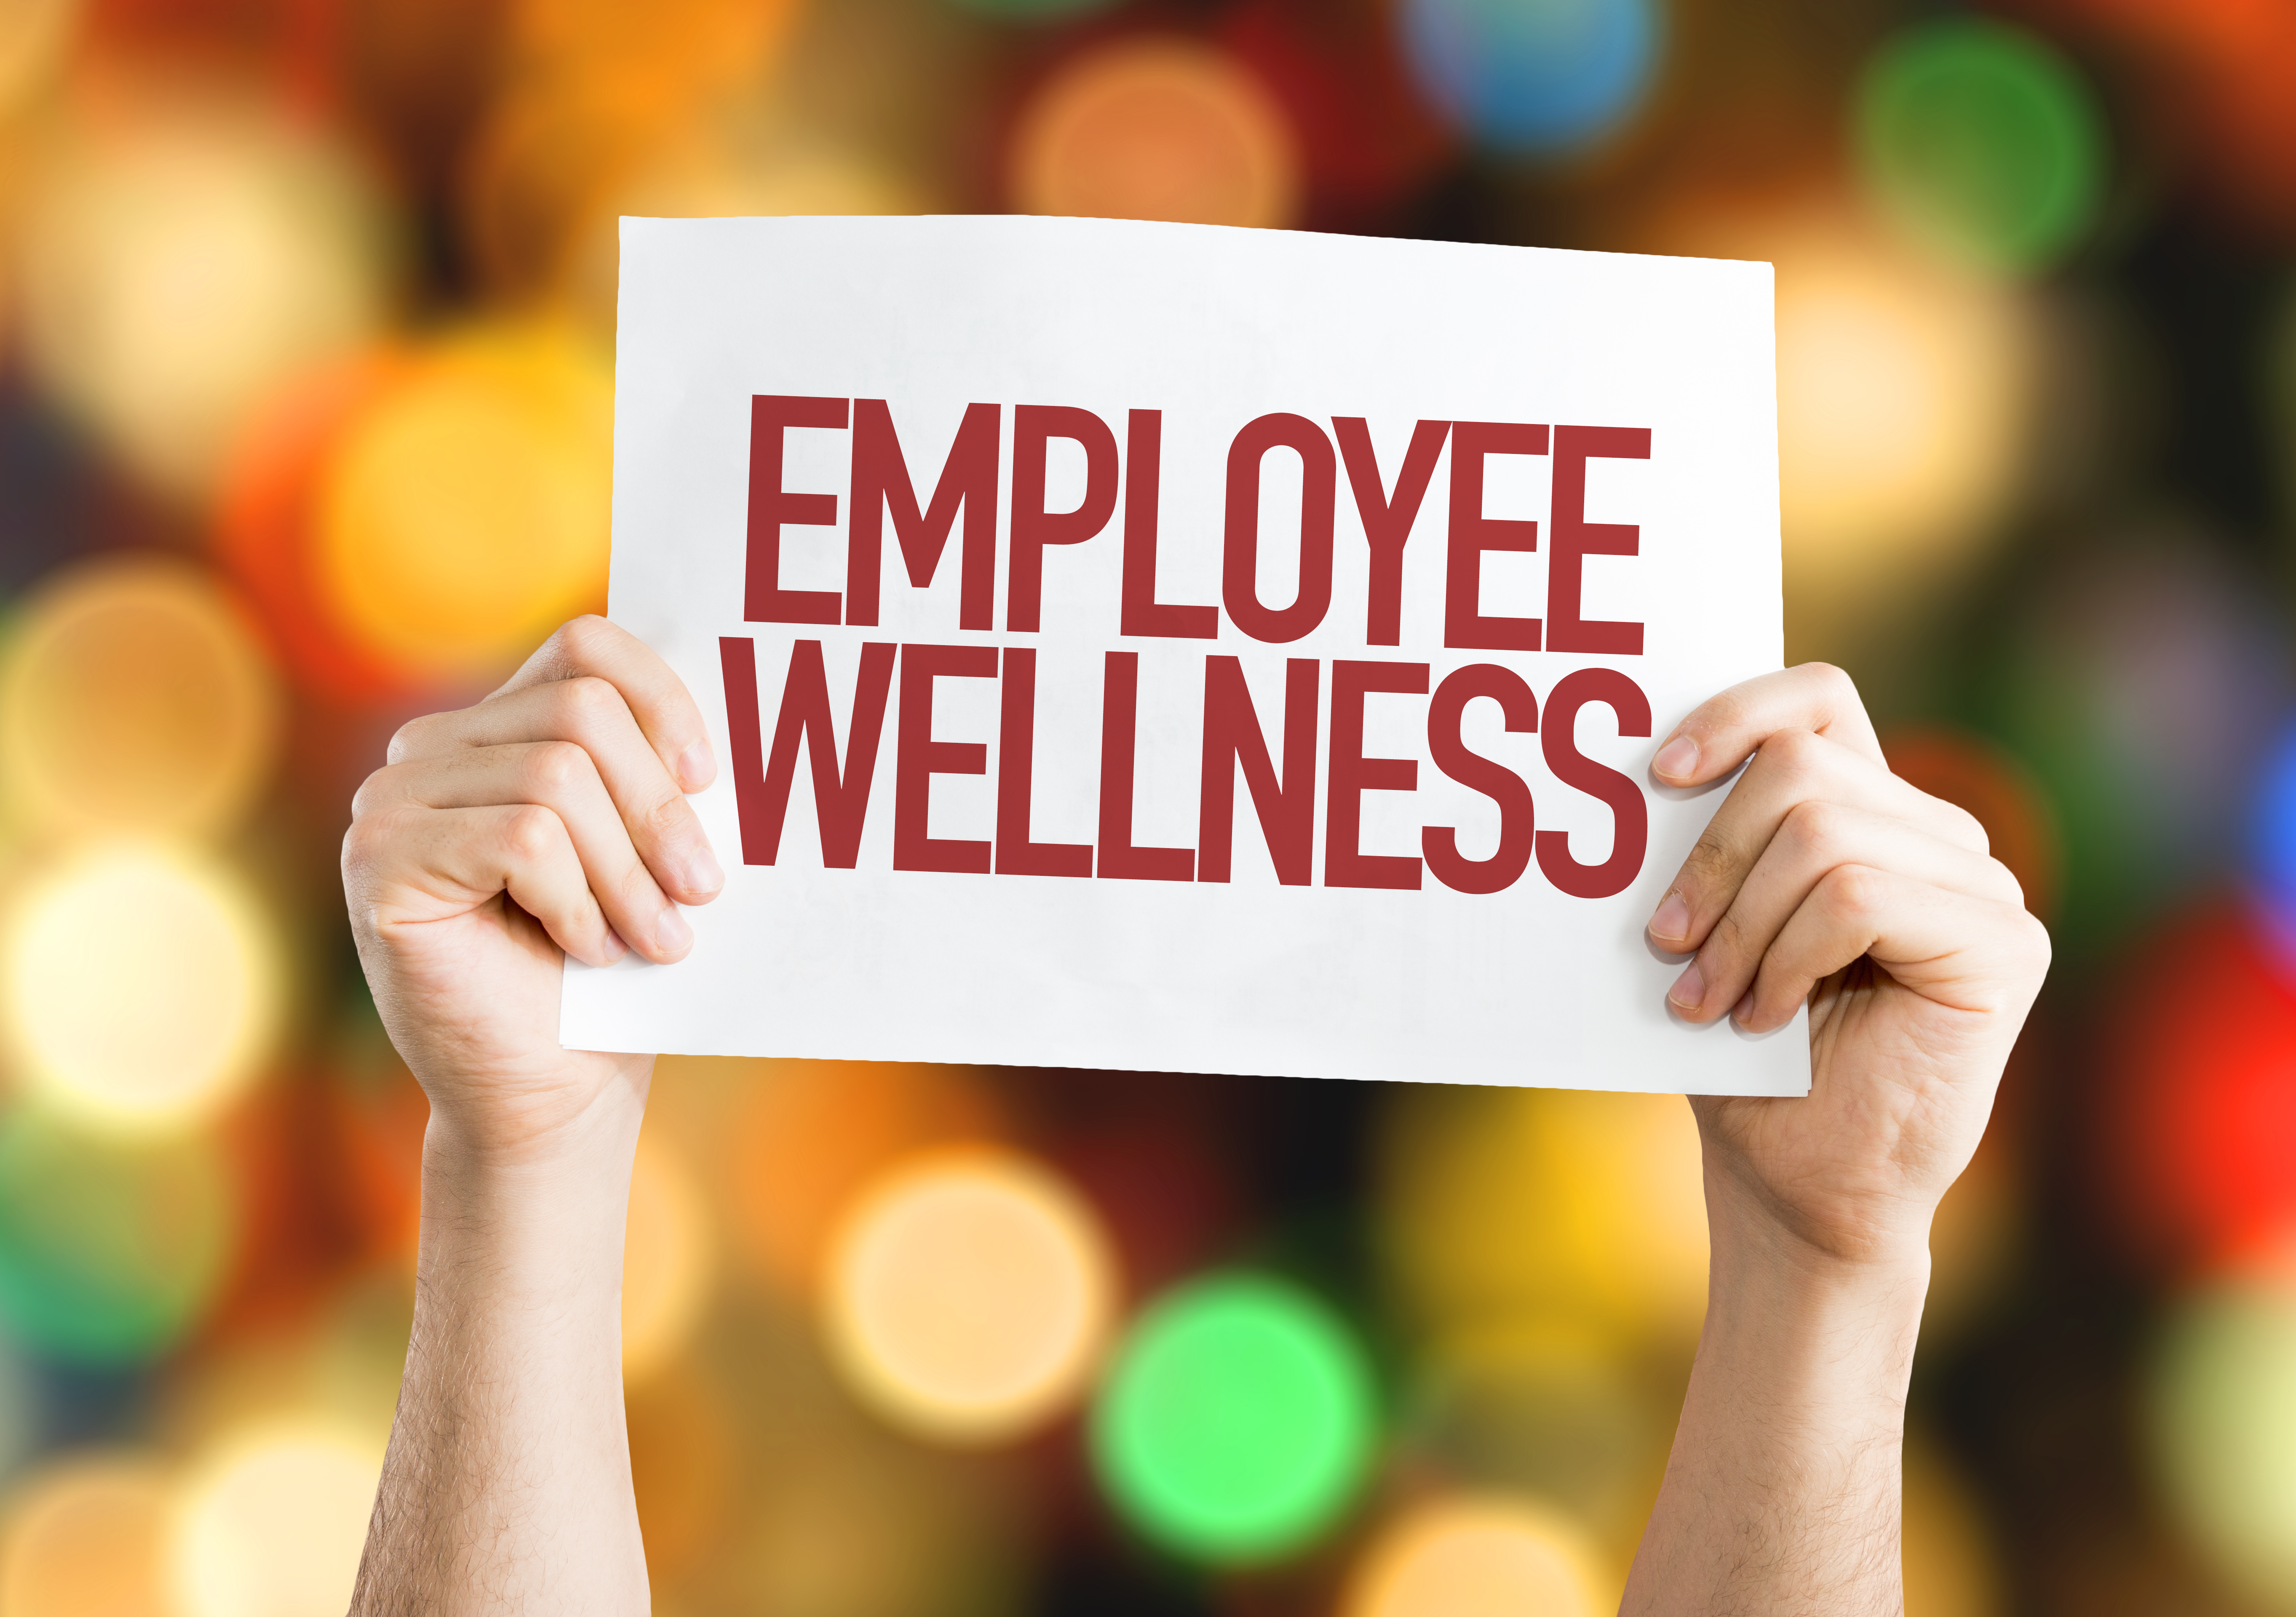 Be a pioneer – help to improve mental wellbeing in the workplace